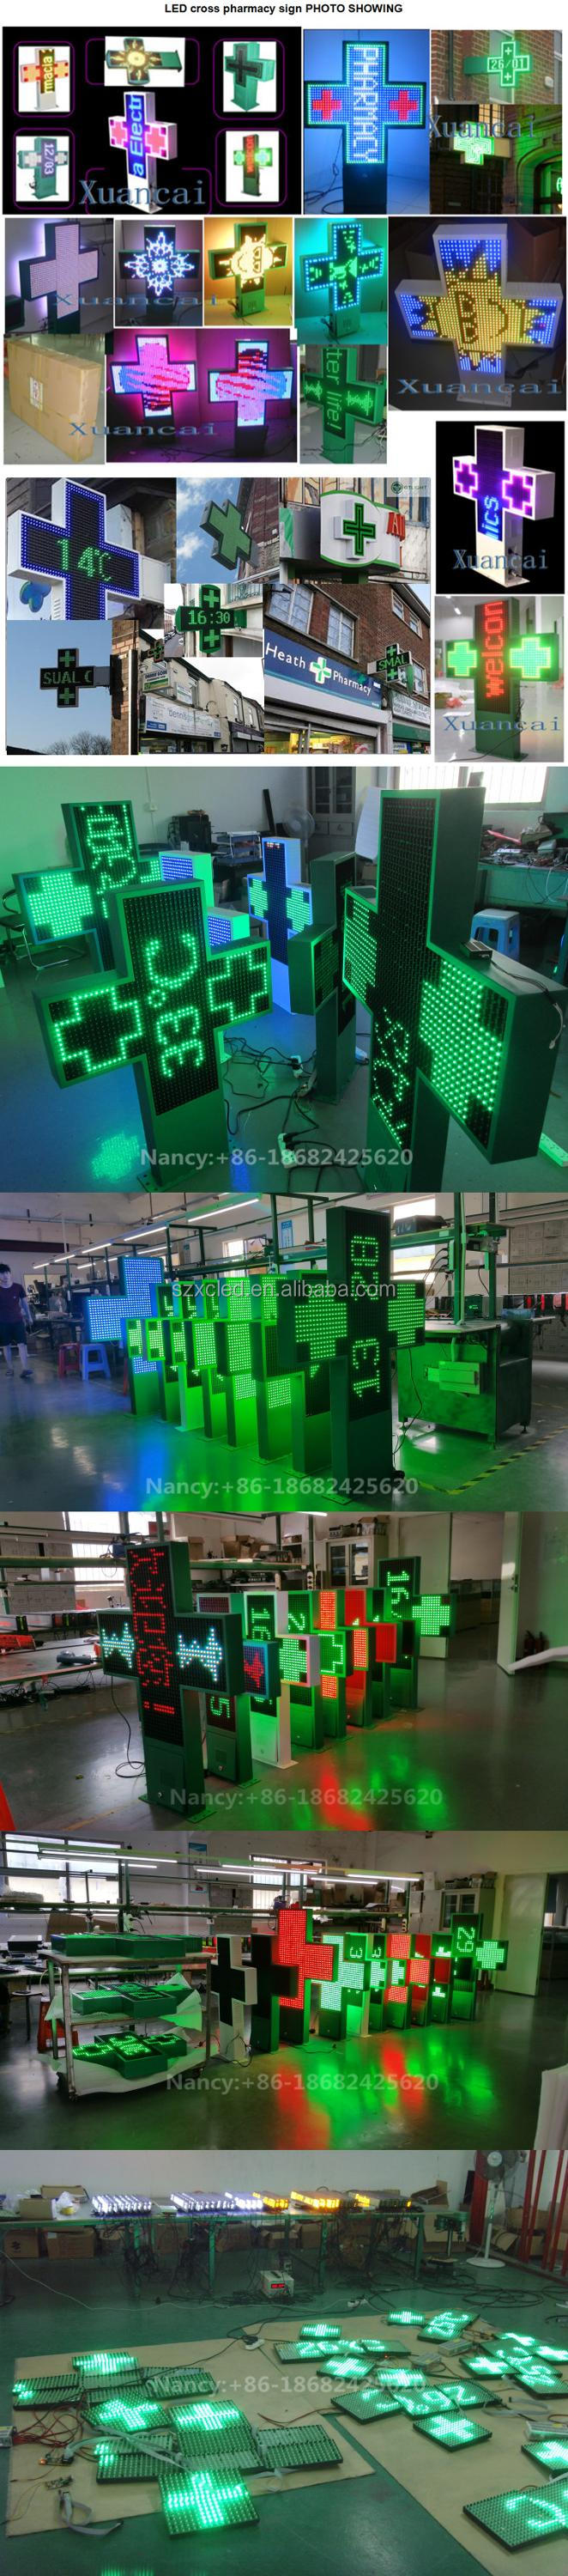 P20 Single Green Color Cross Sign In 100x100cm Size For Outdoor Waterproof LED Cross Pharmacy Display Panel